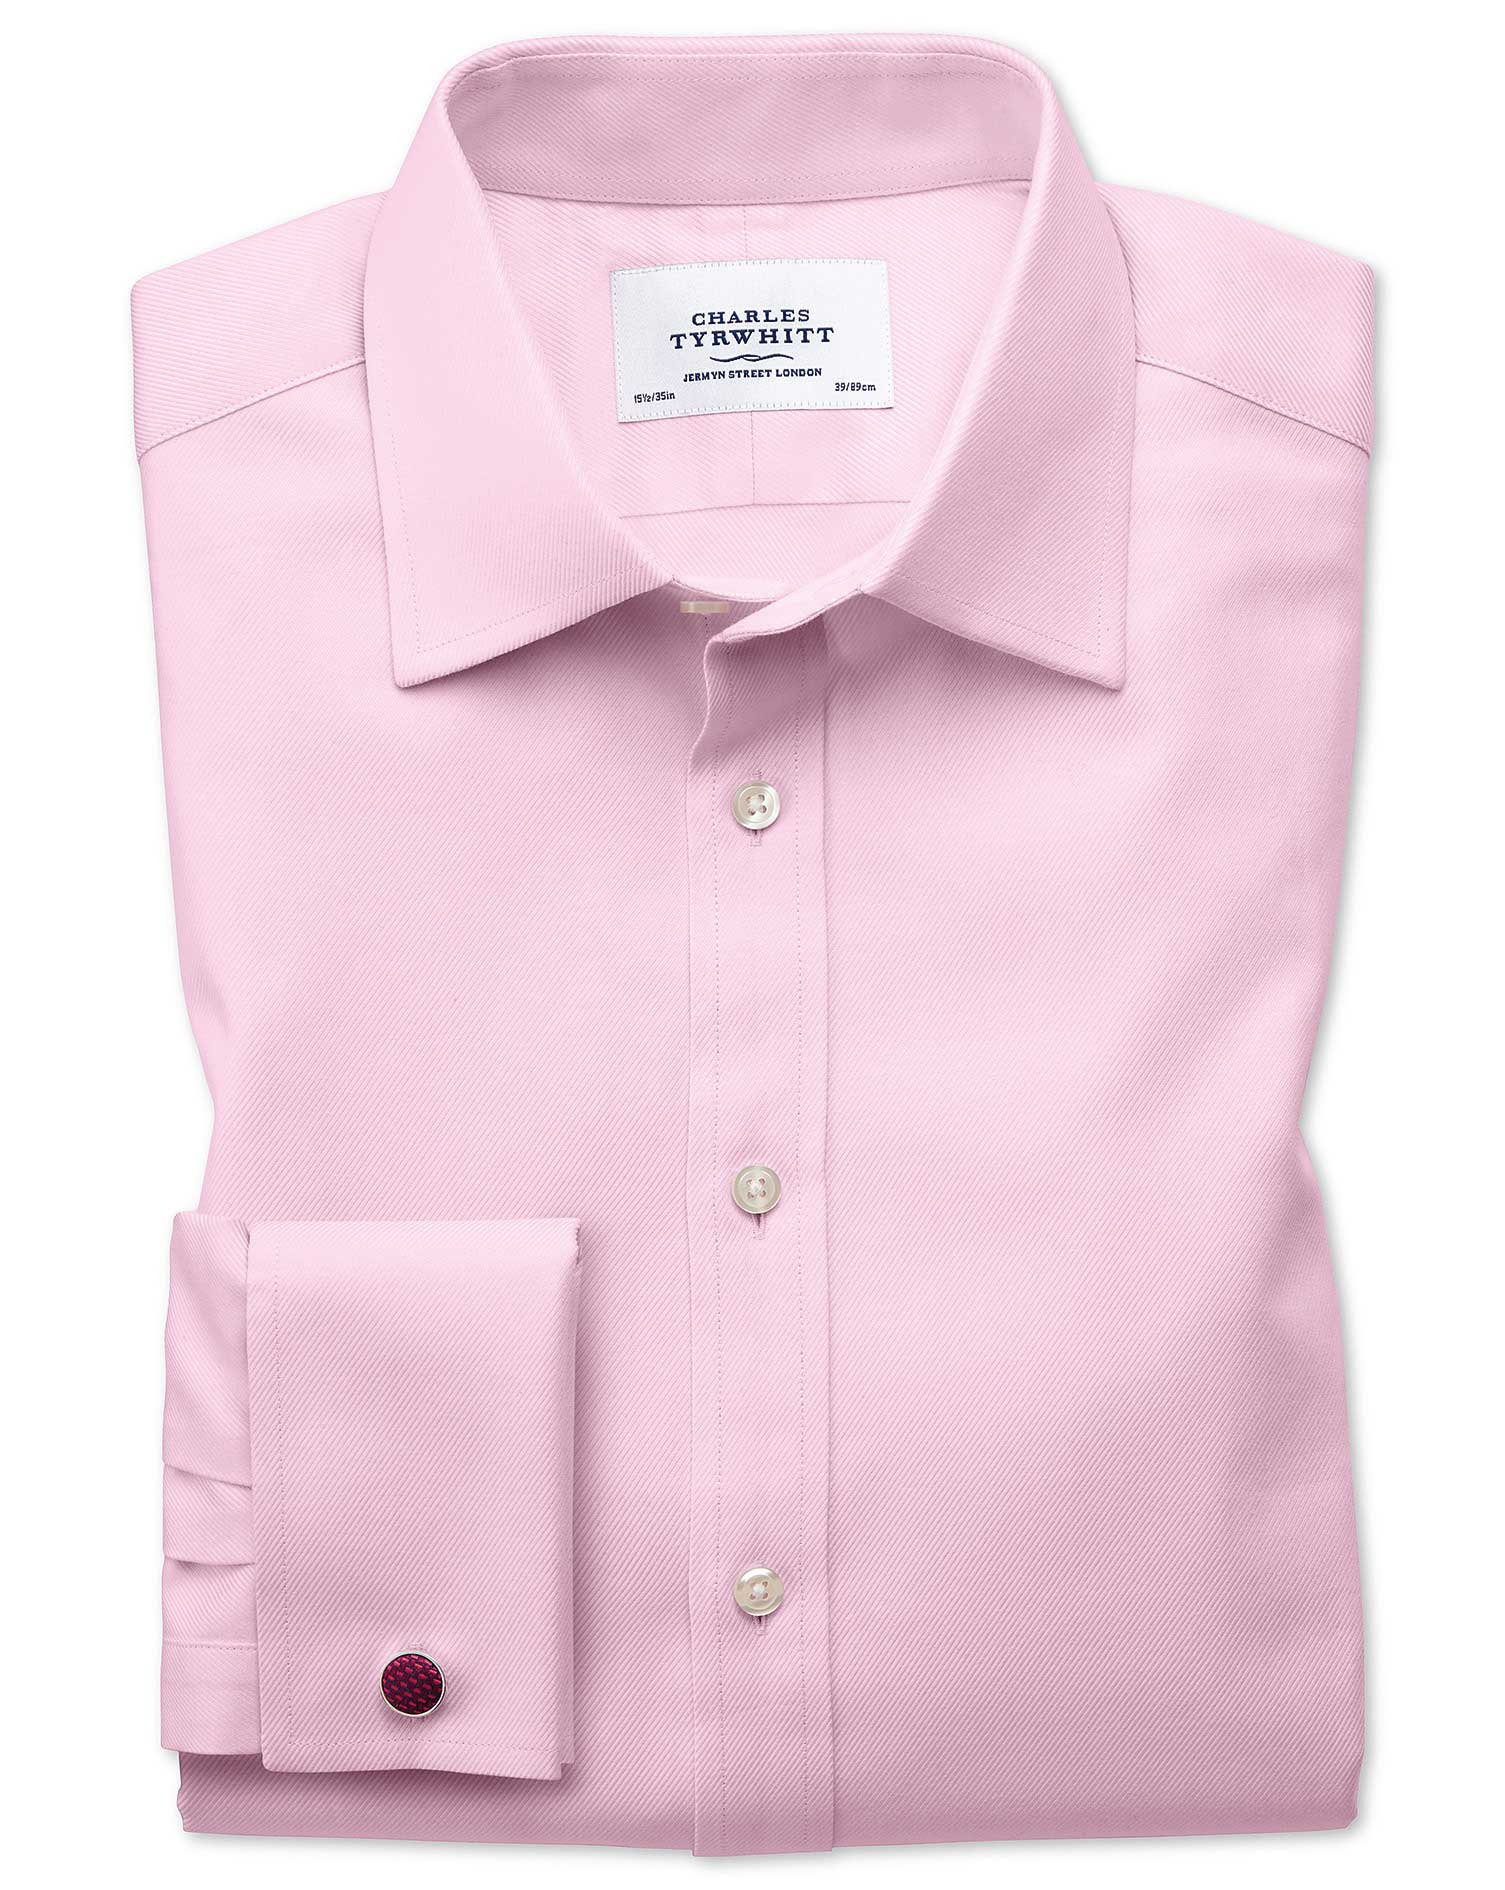 Slim Fit Egyptian Cotton Cavalry Twill Light Pink Formal Shirt Double Cuff Size 16/36 by Charles Tyr